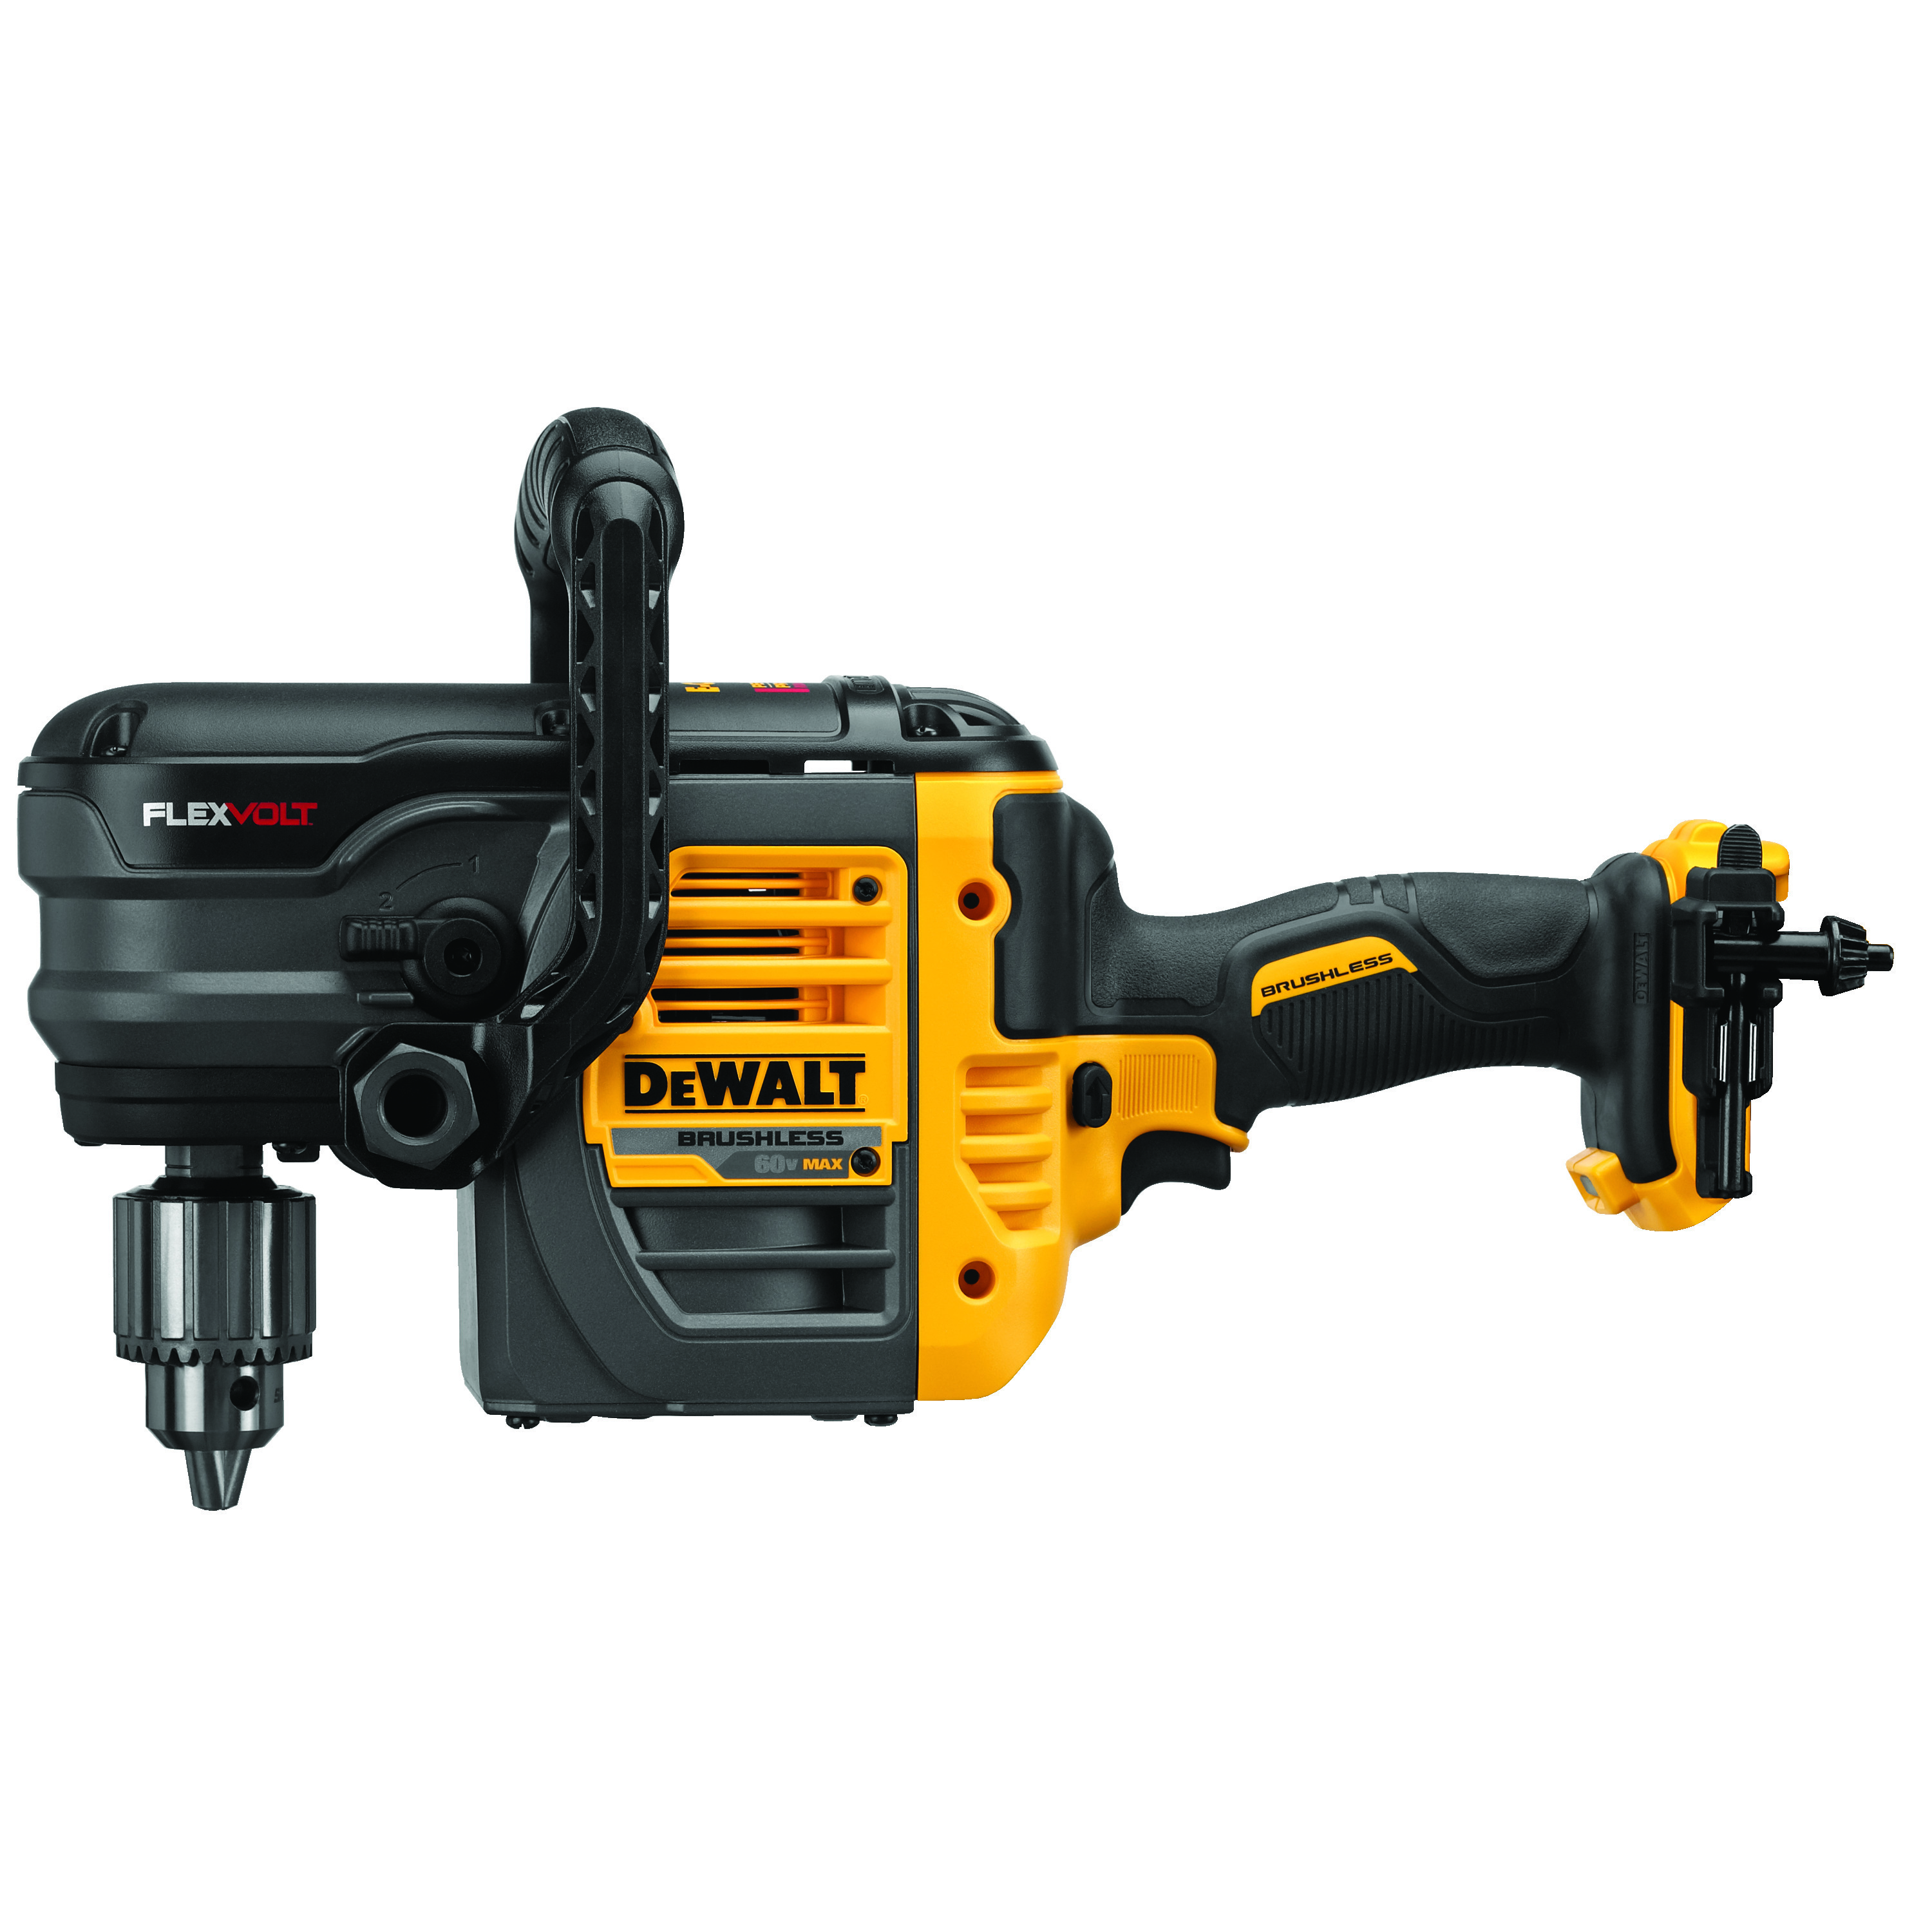 DeWALT® 60V MAX* FLEXVOLT™ DCD460B Brushless Cordless VSR Stud and Joist Drill With E-Clutch® System, 1/2 in Keyed Chuck, 60 V, 0 to 300/0 to 1250 rpm No-Load, 16 in OAL, Lithium-Ion Battery, Tool Only